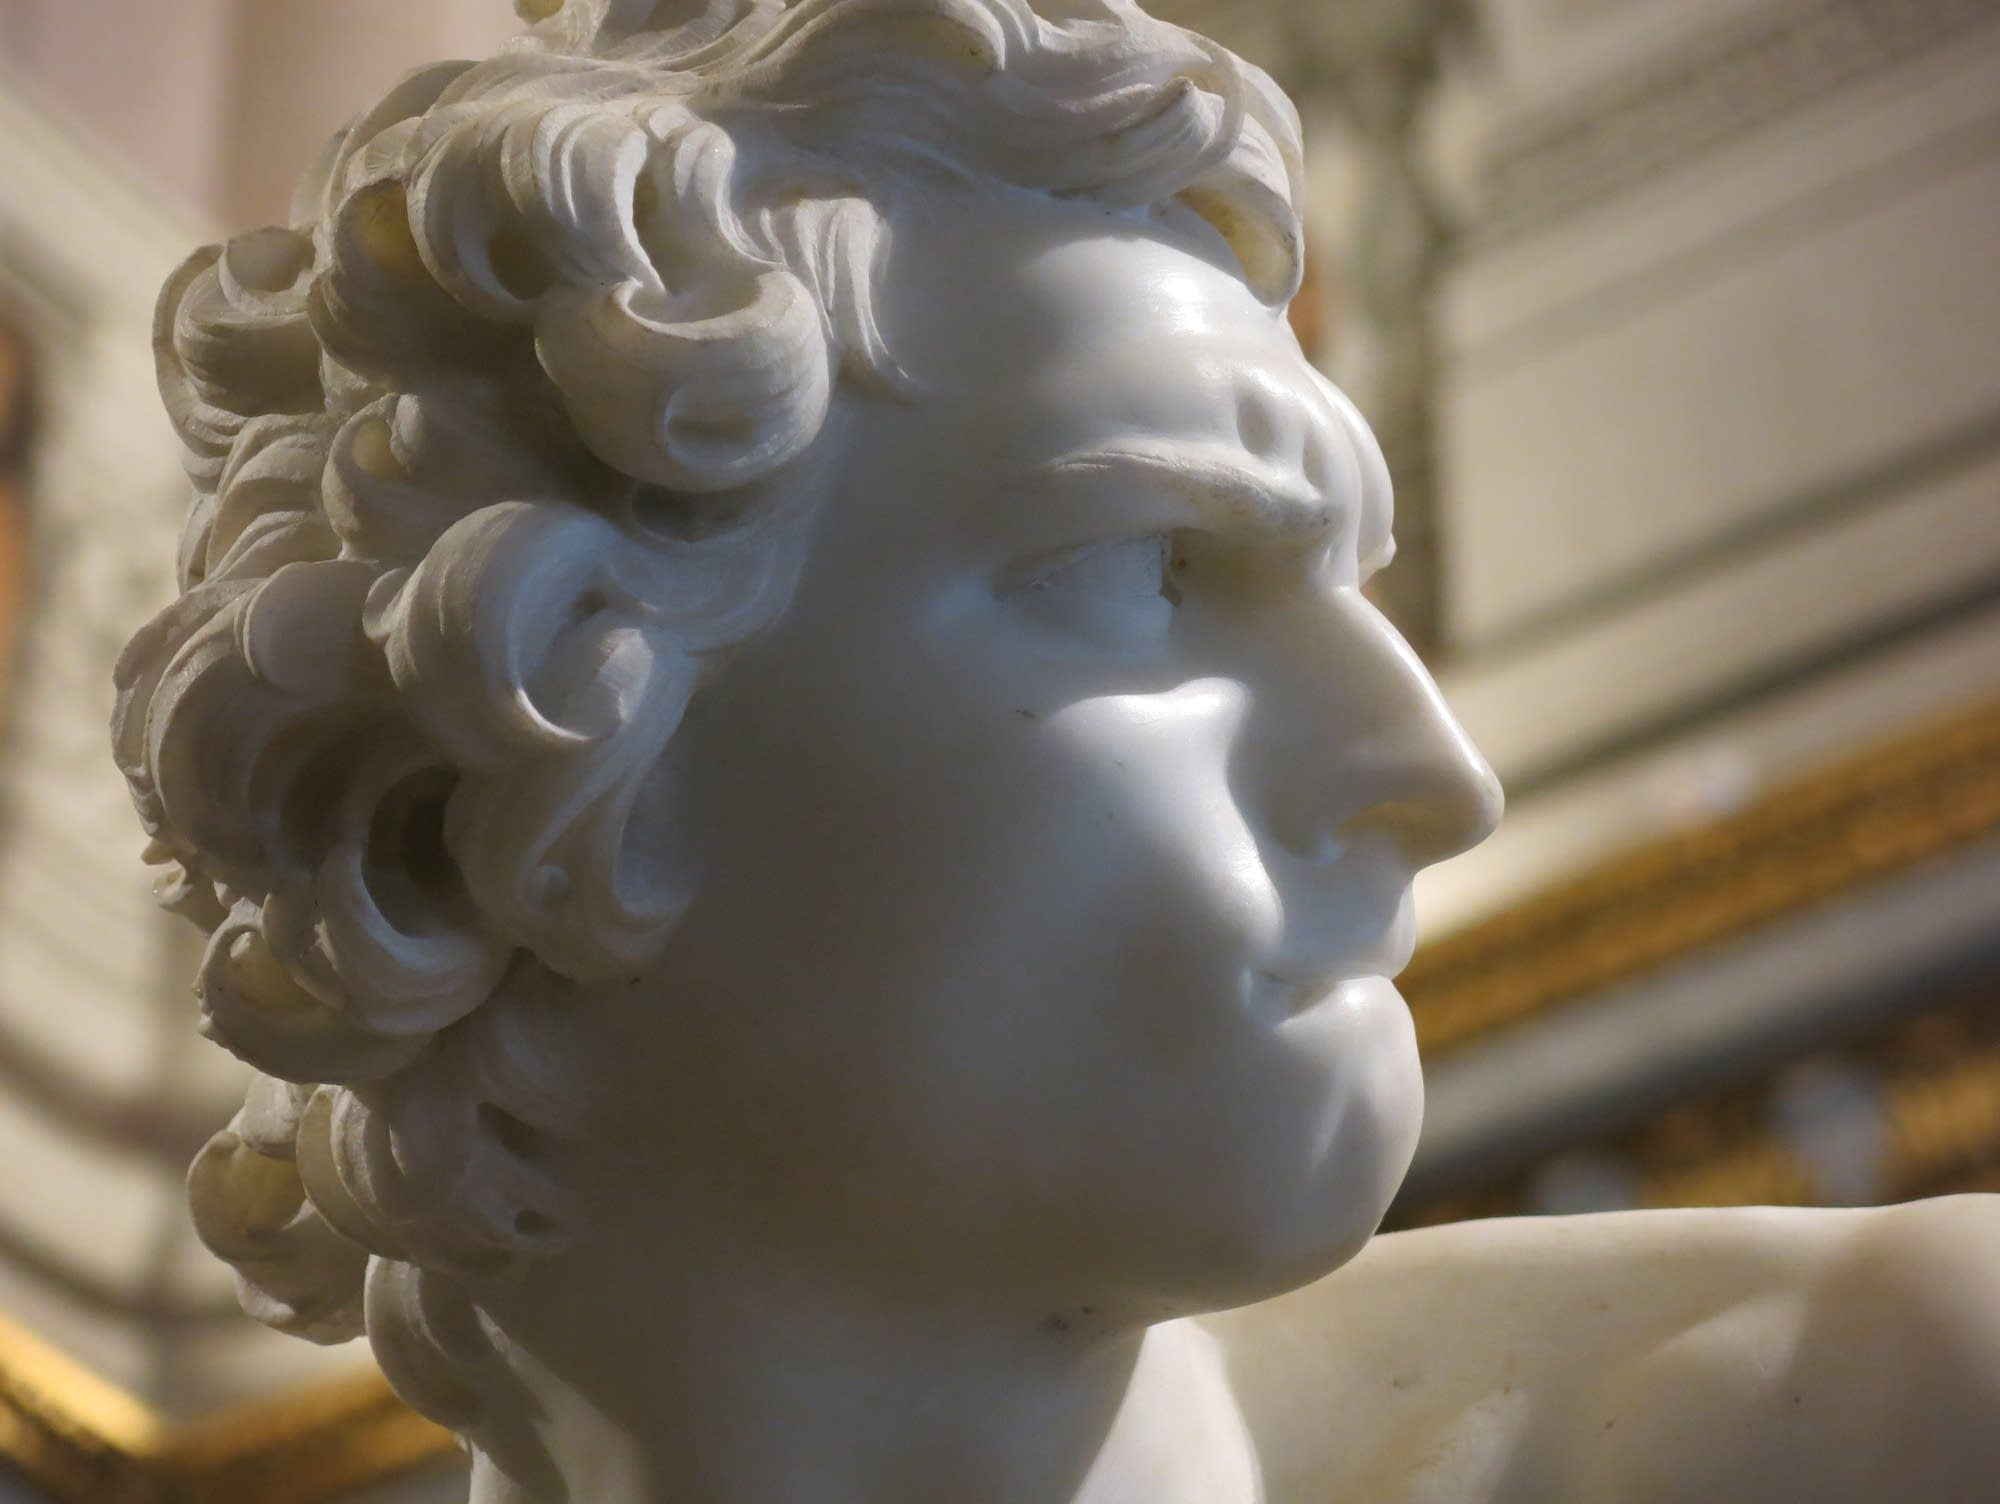 A statue of David in Rome's Borghese Gallery.